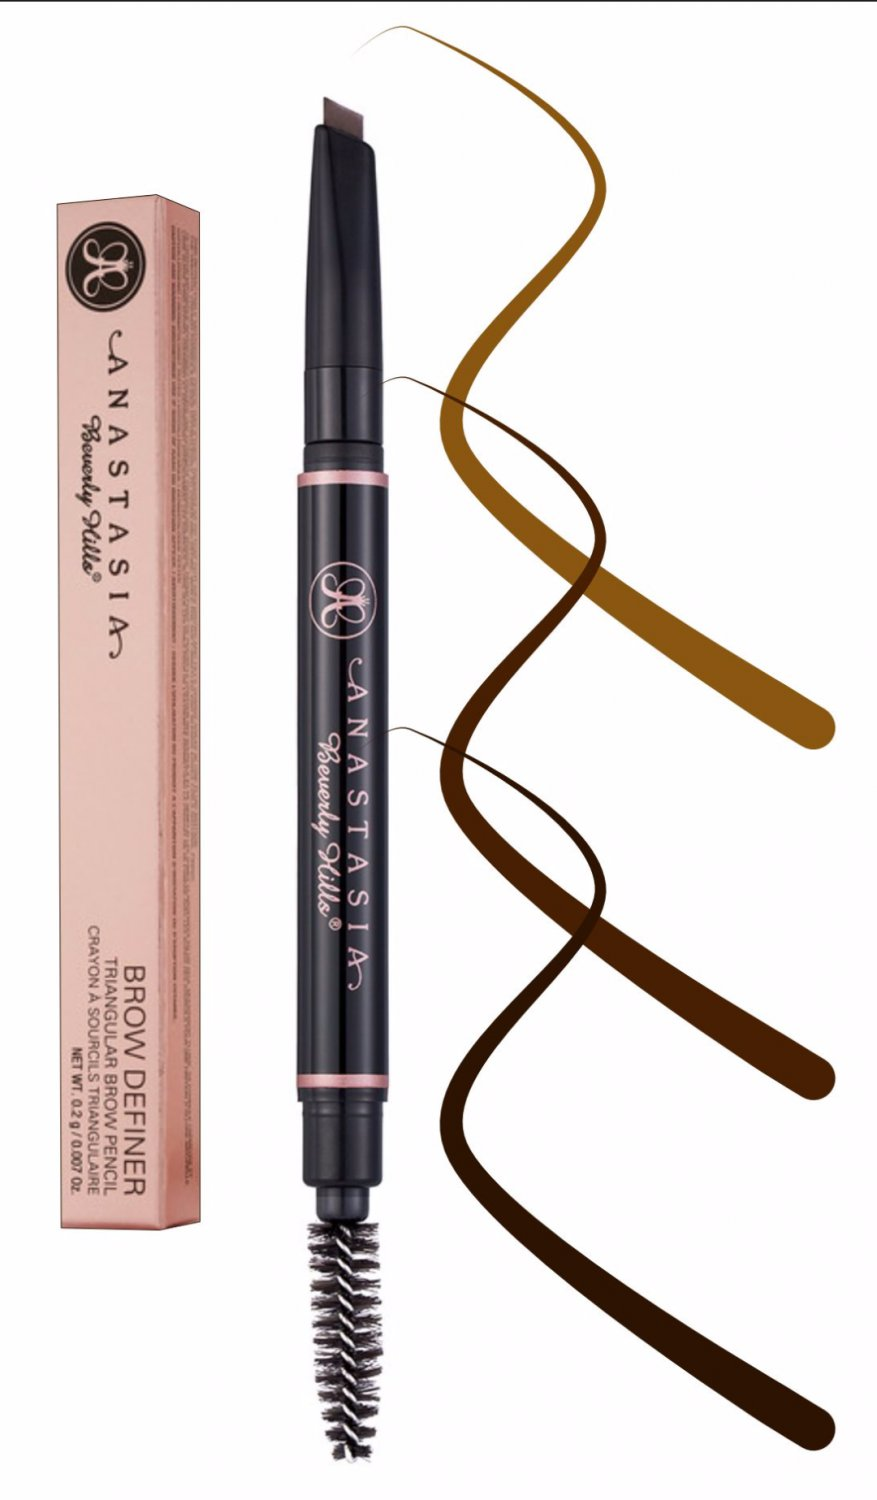 Anastasia Beverly Hills Brow Definer Skinny Brow Soft Brown Pencil